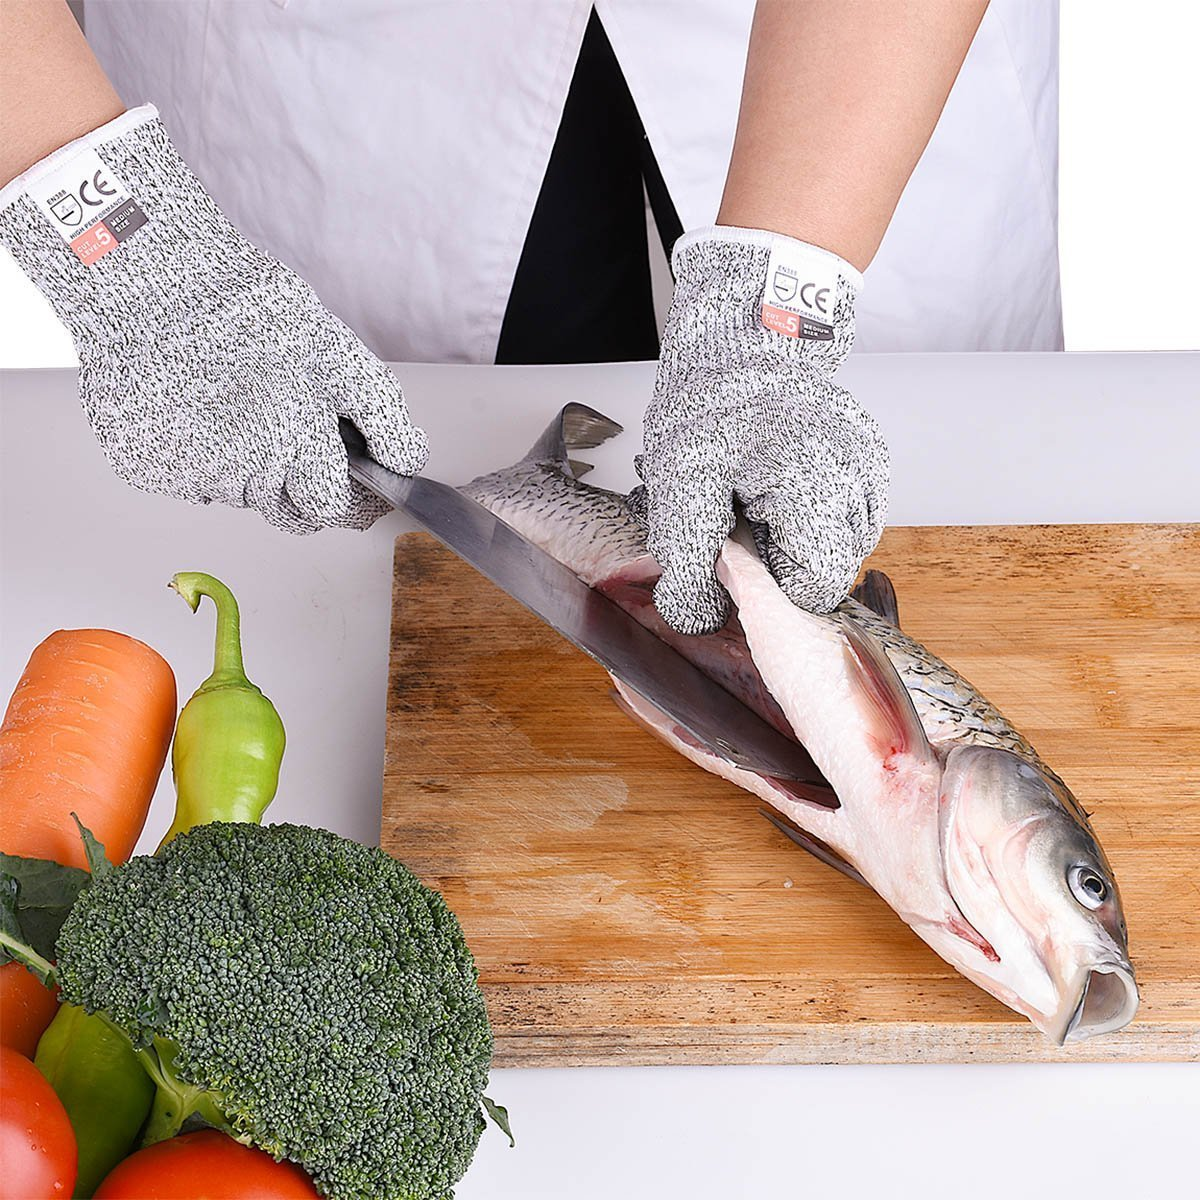 Cut Resistant Gloves High Performance Level 5 Protection,Safety Cutting Gloves For Hand Protection in Kitchen,whittling protection,wood whittling.1pair